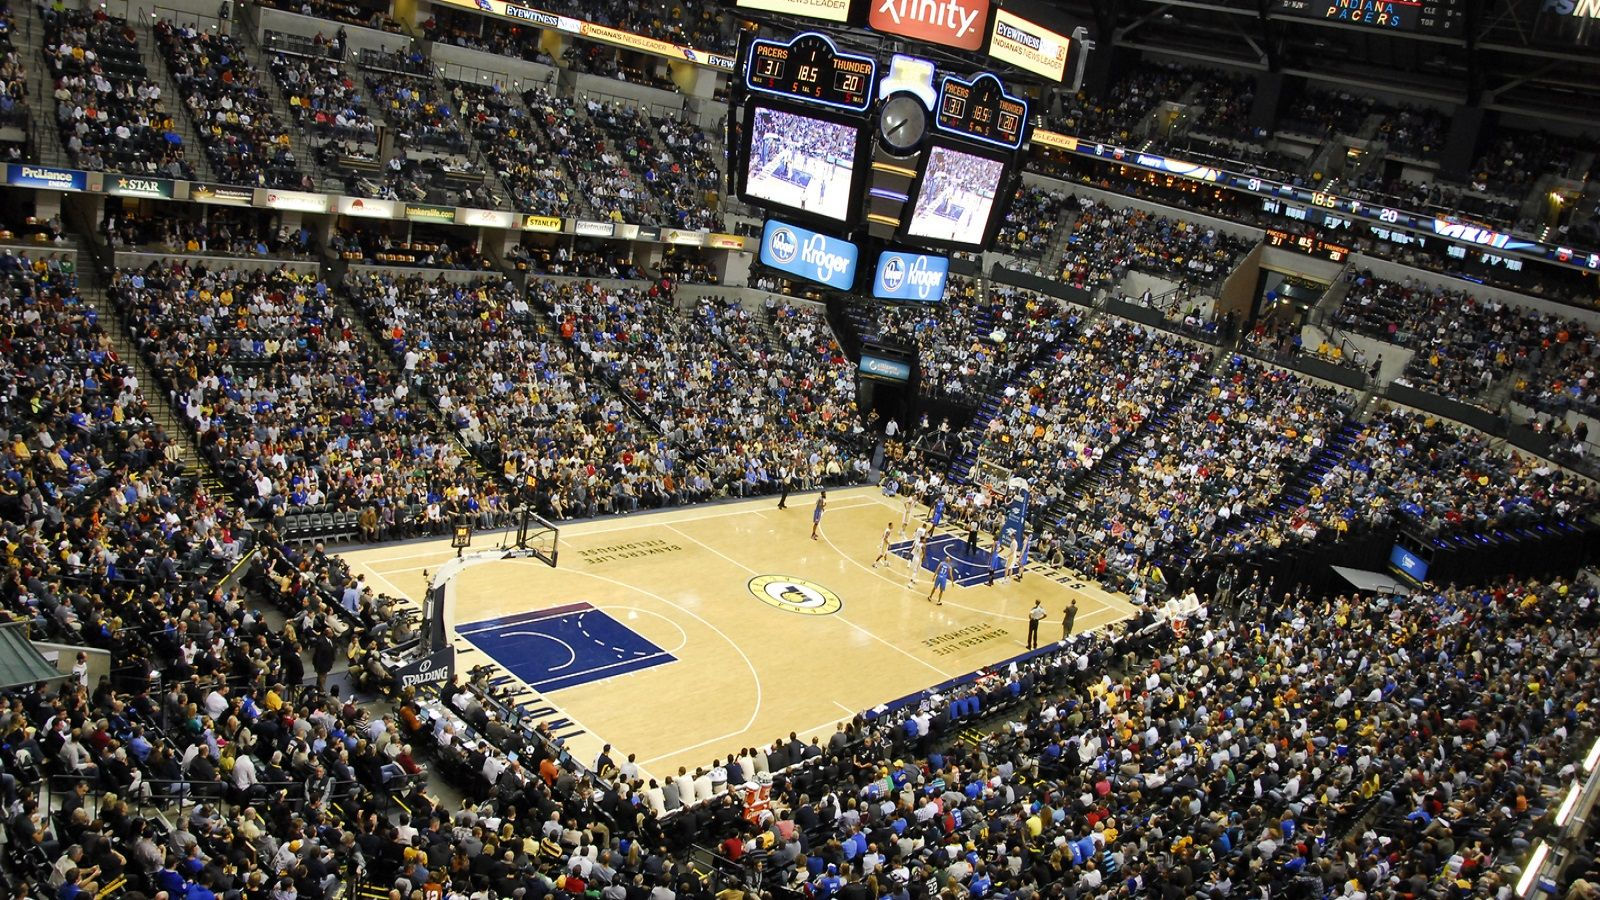 Things to do in Indianapolis - Bankers Life Fieldhouse